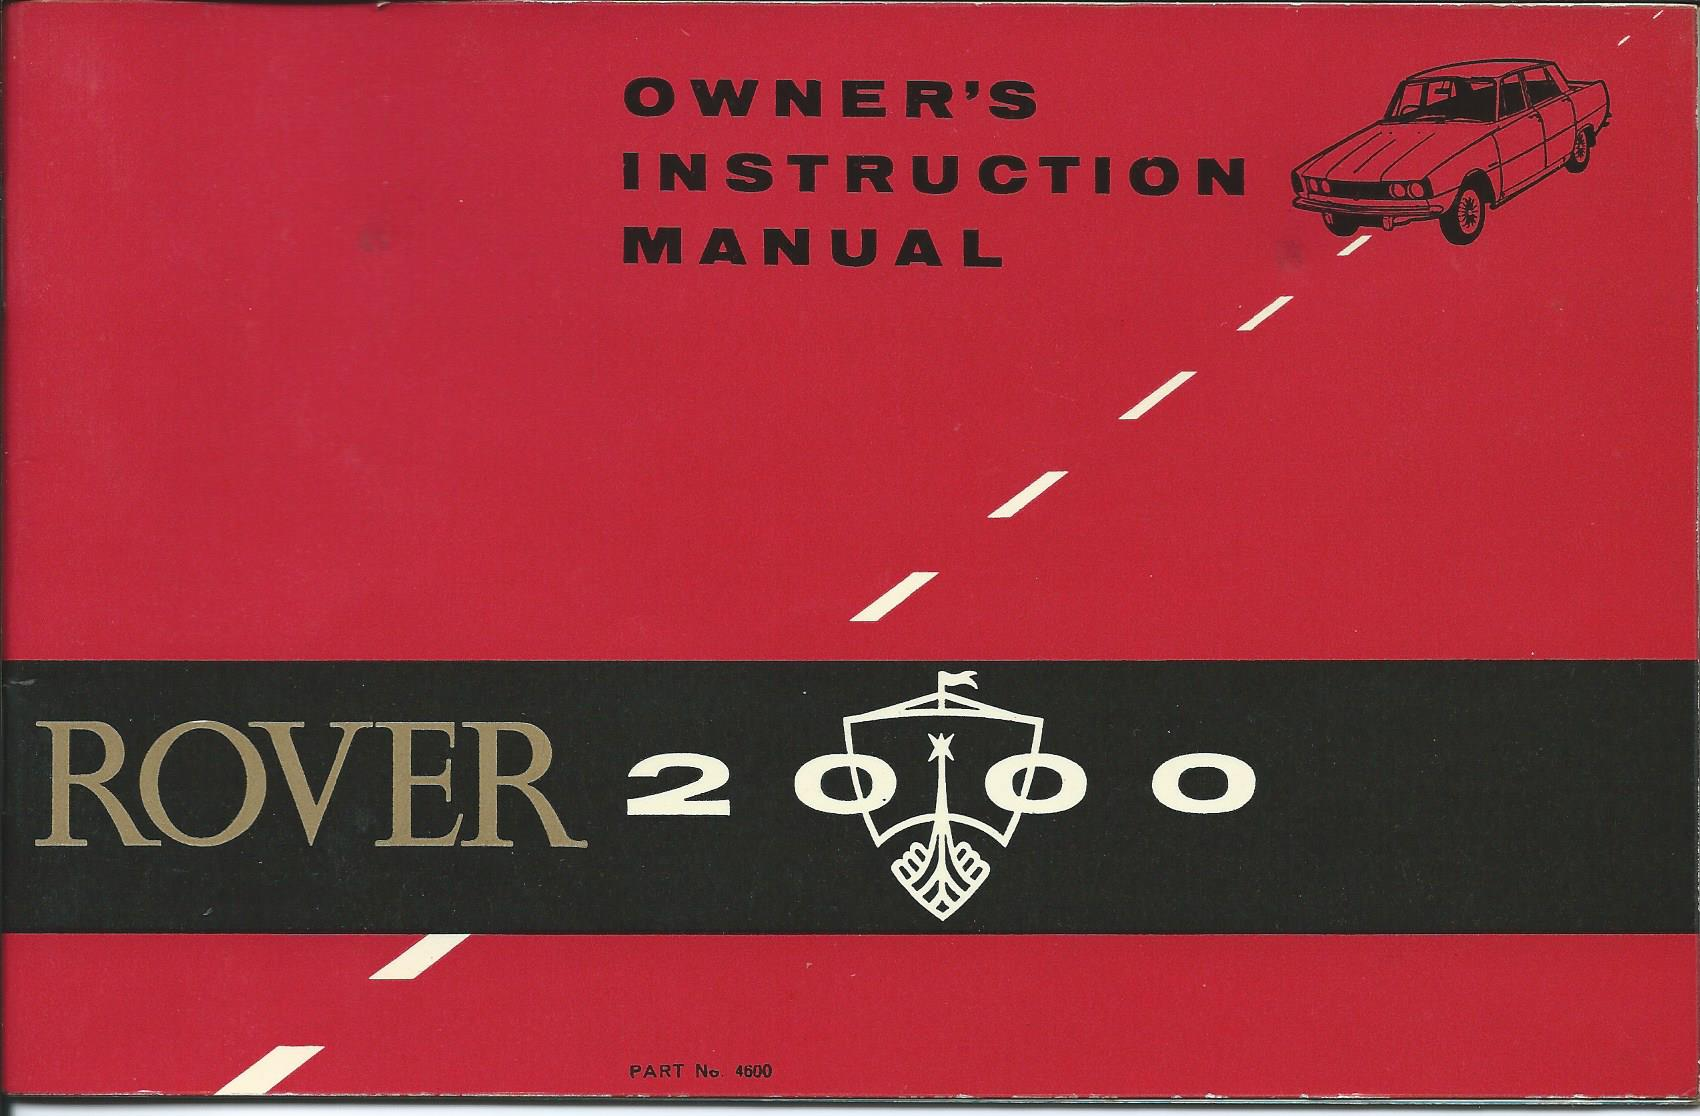 Download | Rover 2000 Owners Instruction Manual extract 1965 PDF